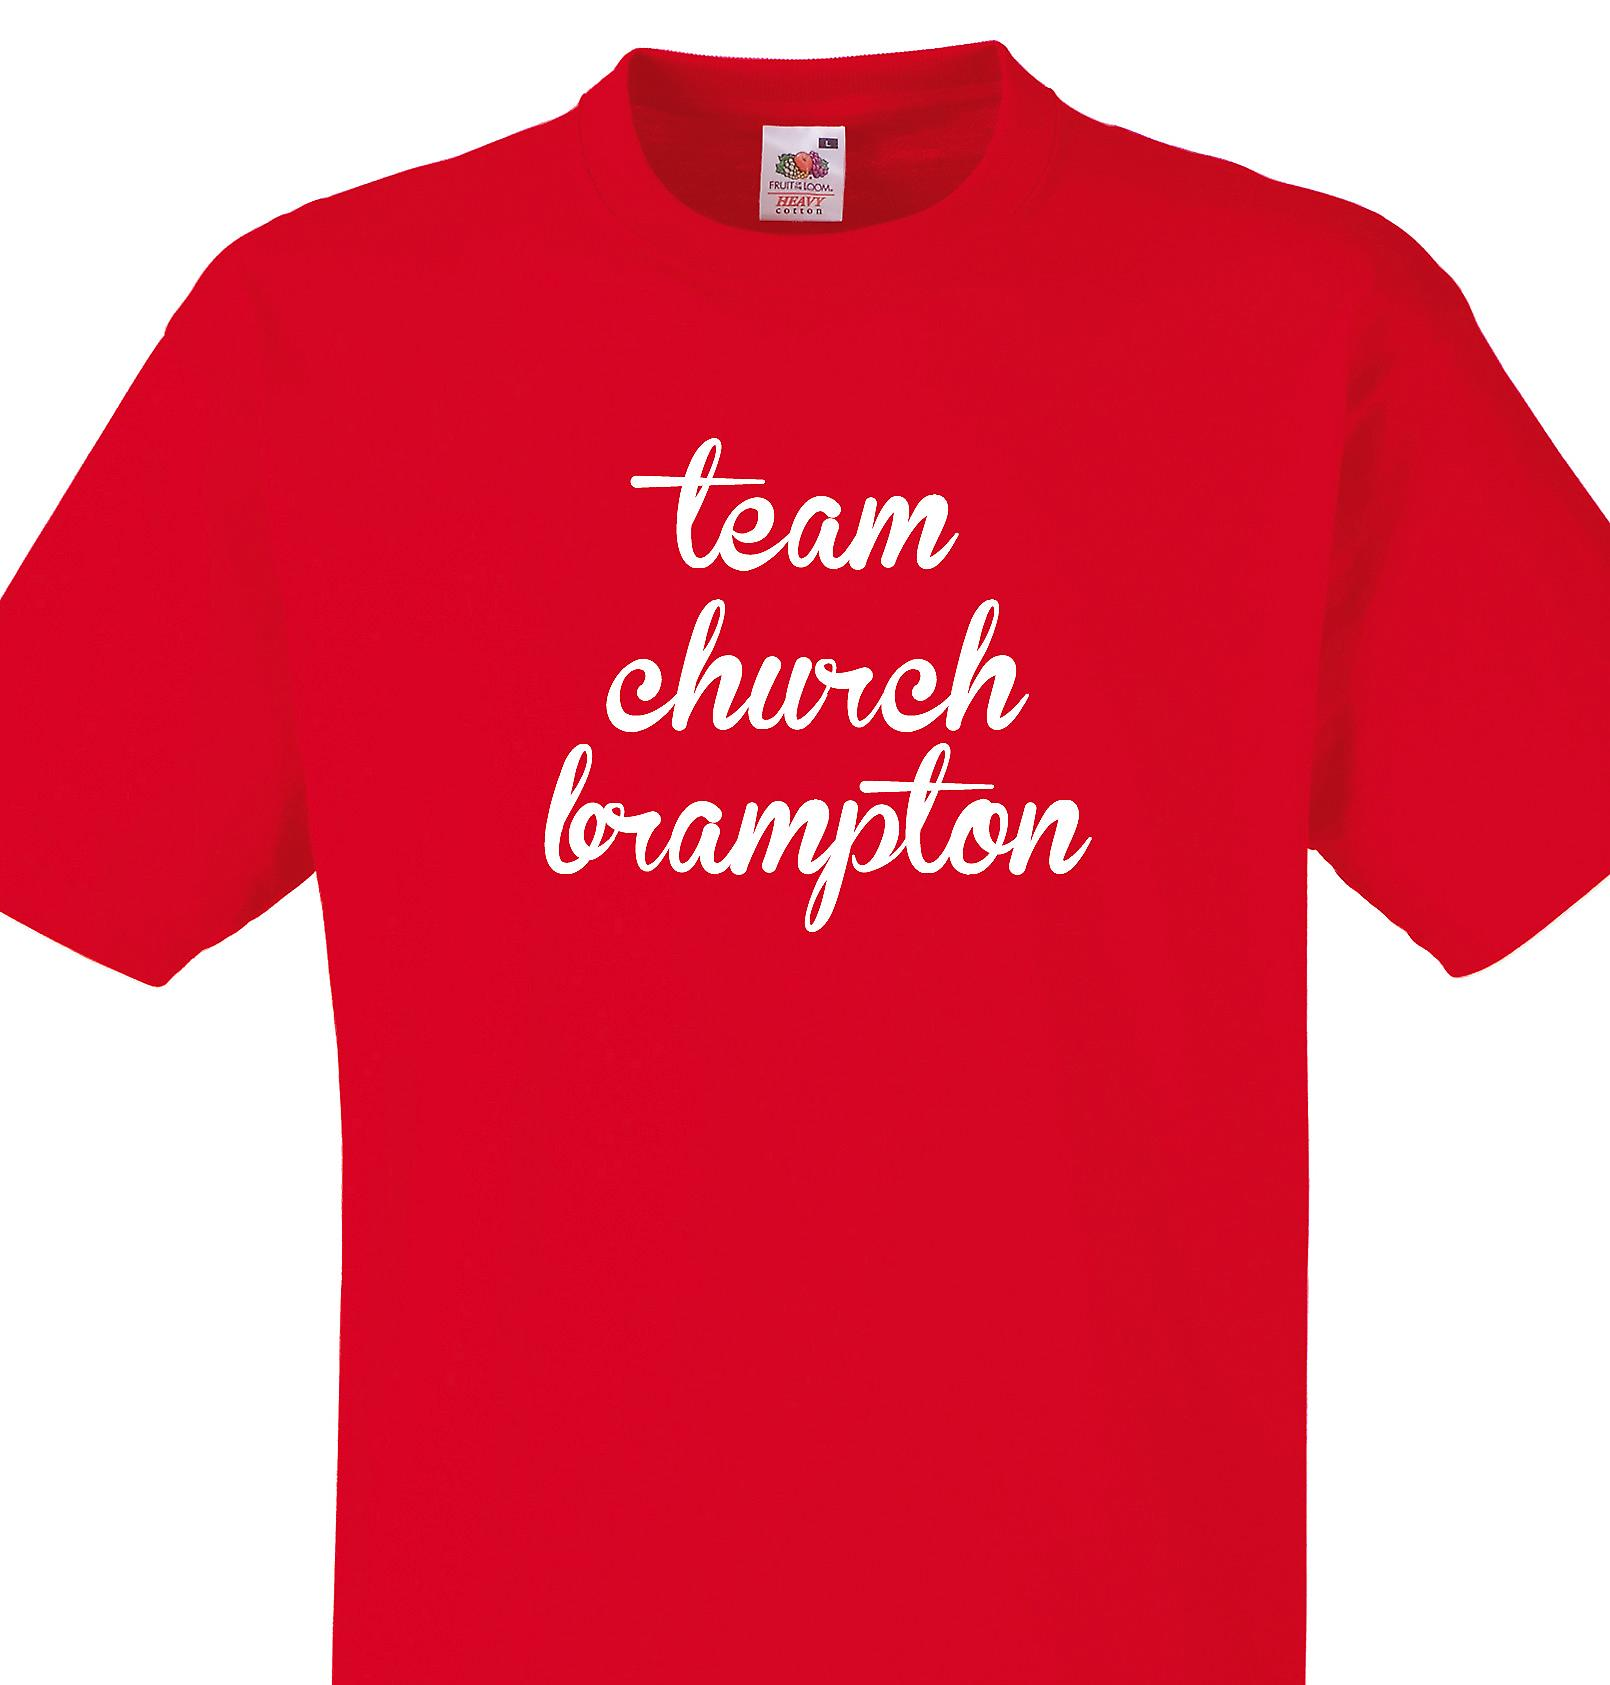 Team Church brampton Red T shirt